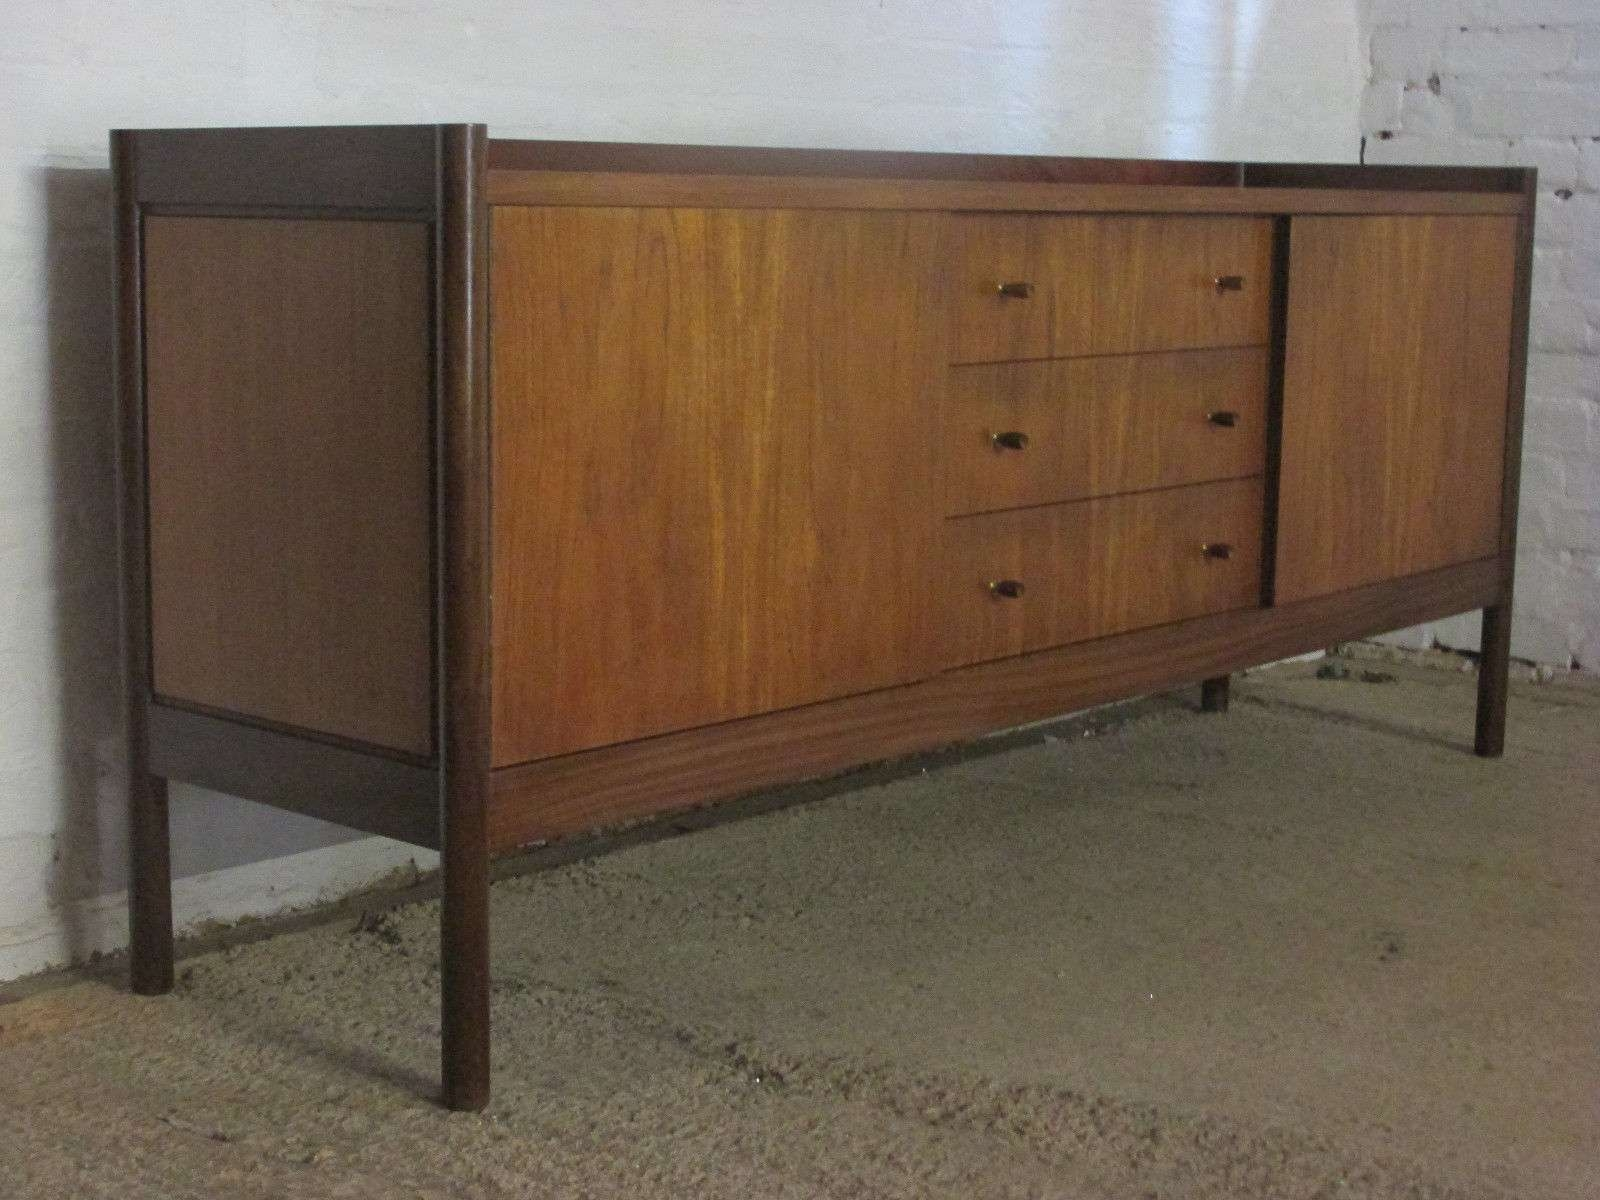 Retro 1960S/1970S Vanson Large Six Foot Teak Sideboard With Pertaining To 7 Foot Sideboards (View 15 of 20)